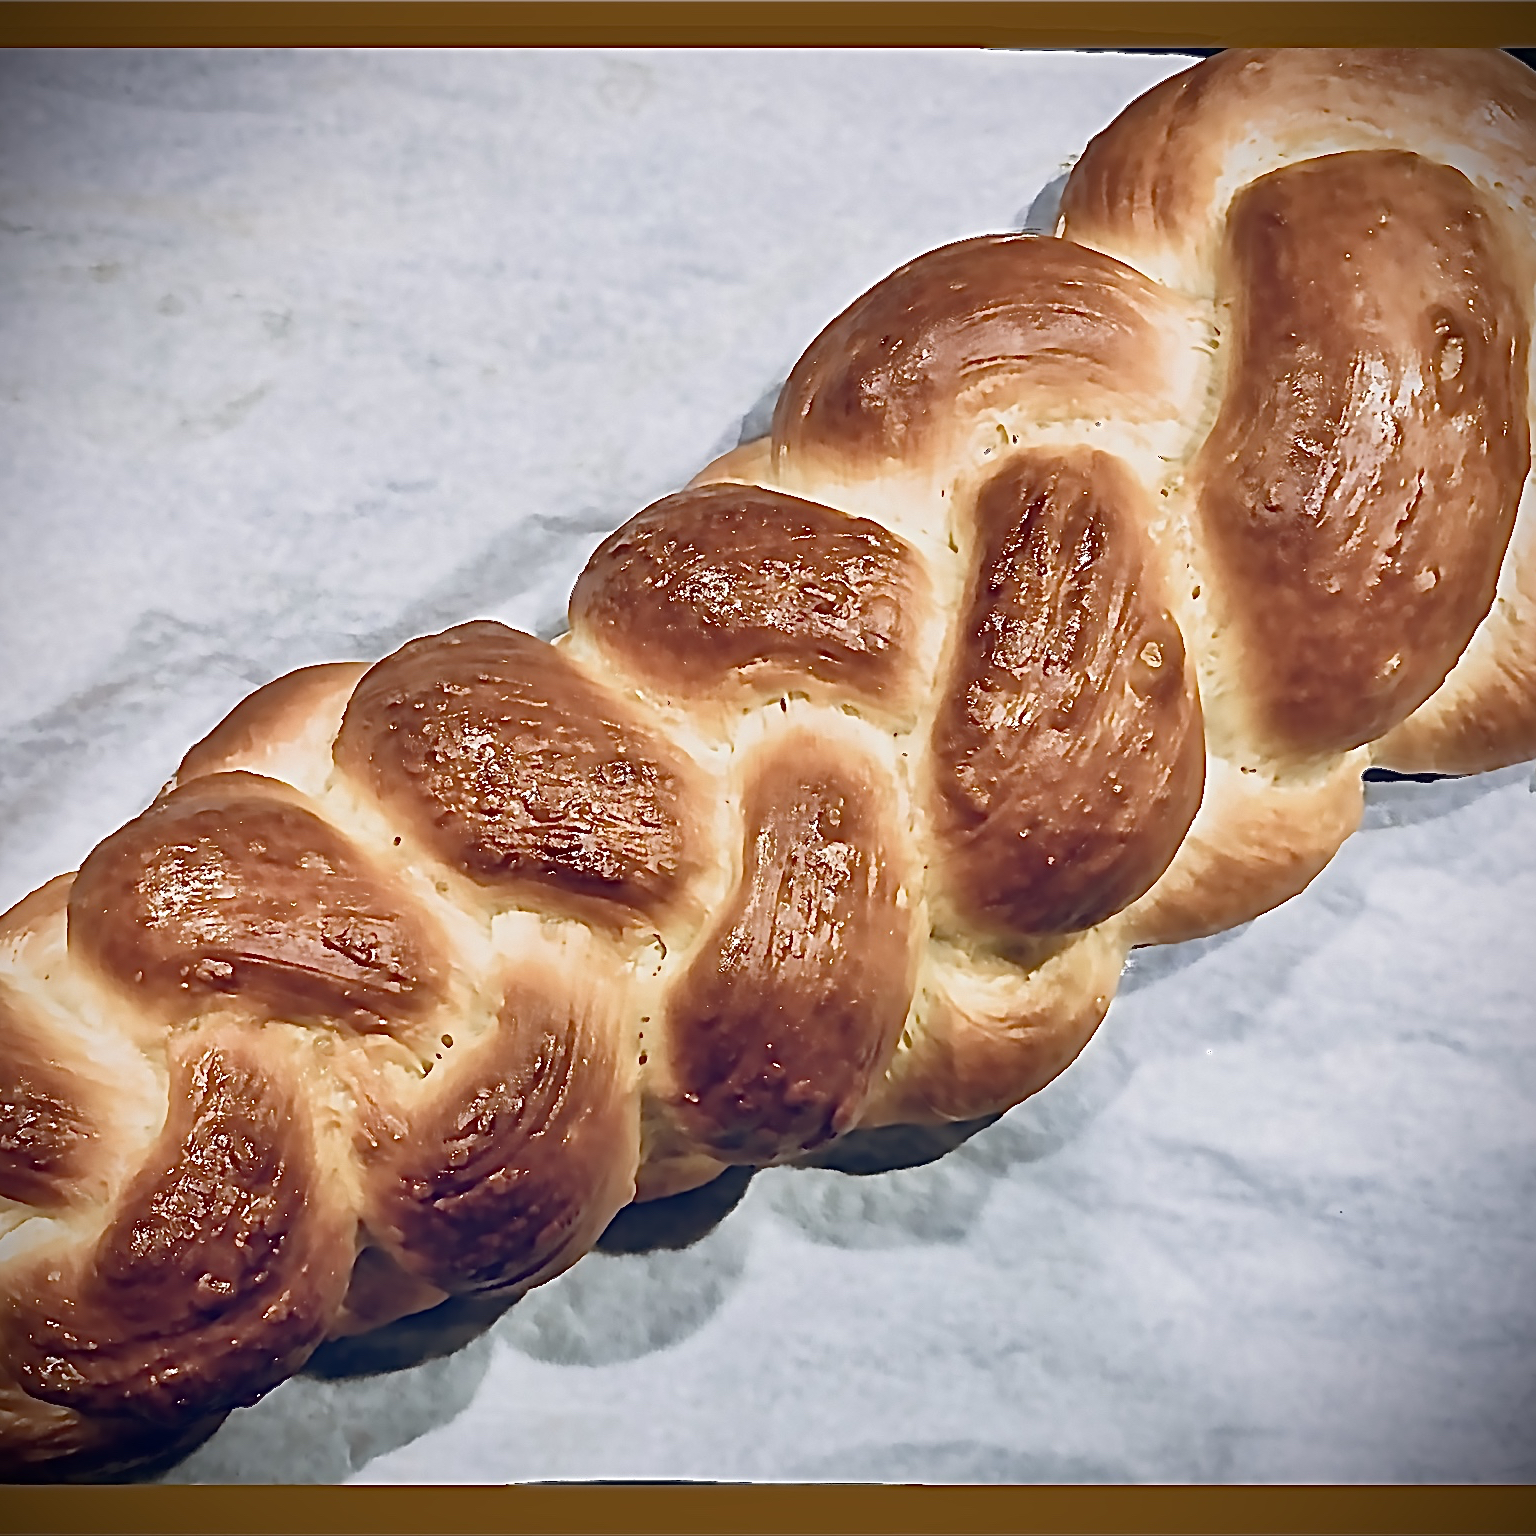 Hungarian Braided White Bread